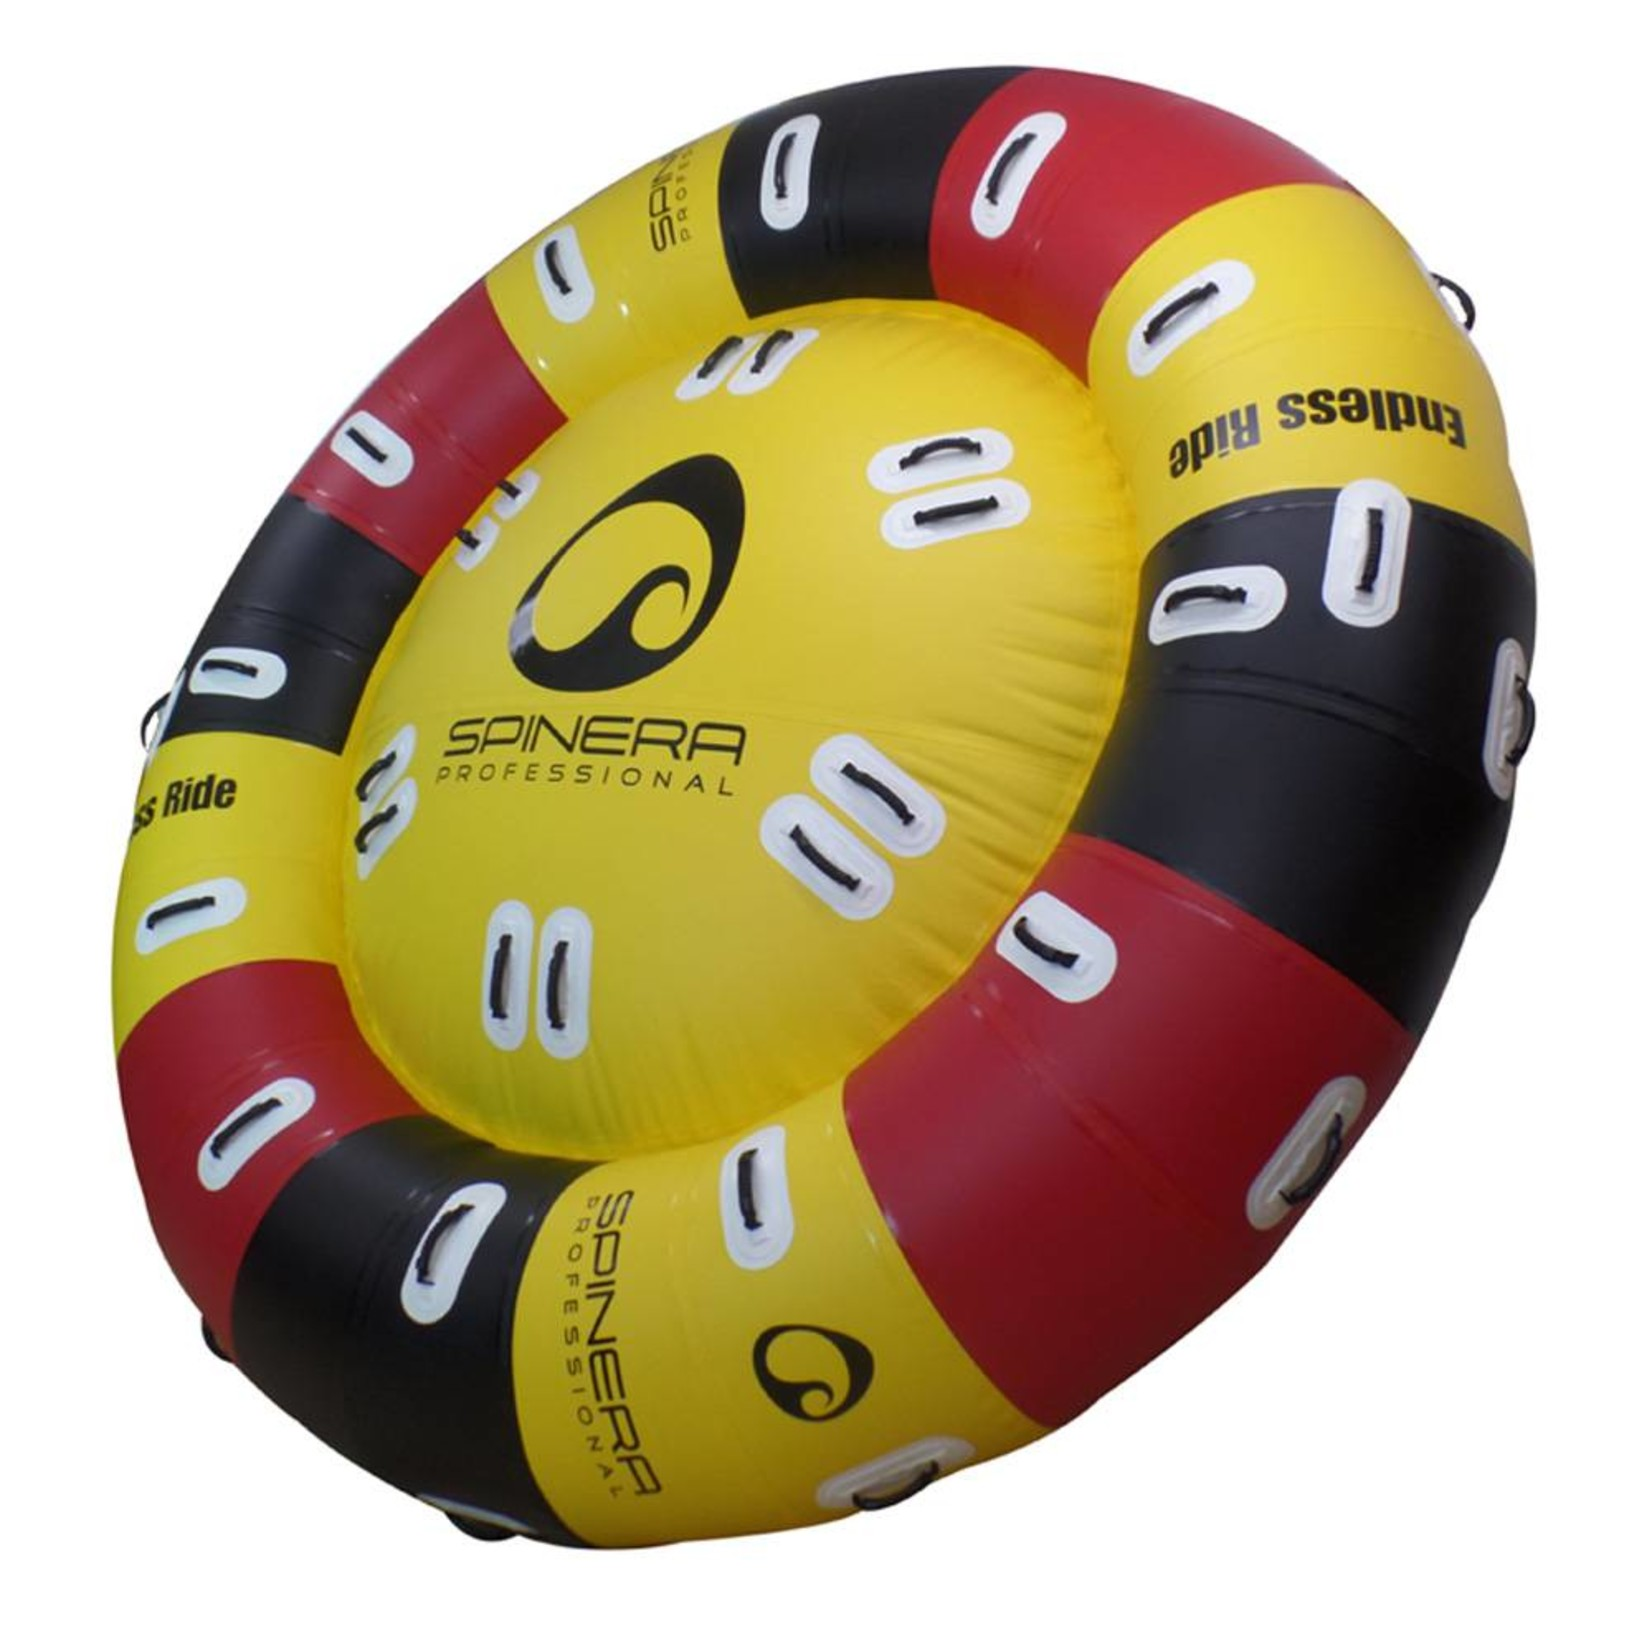 Spinera Professional Endless Ride - Spinera